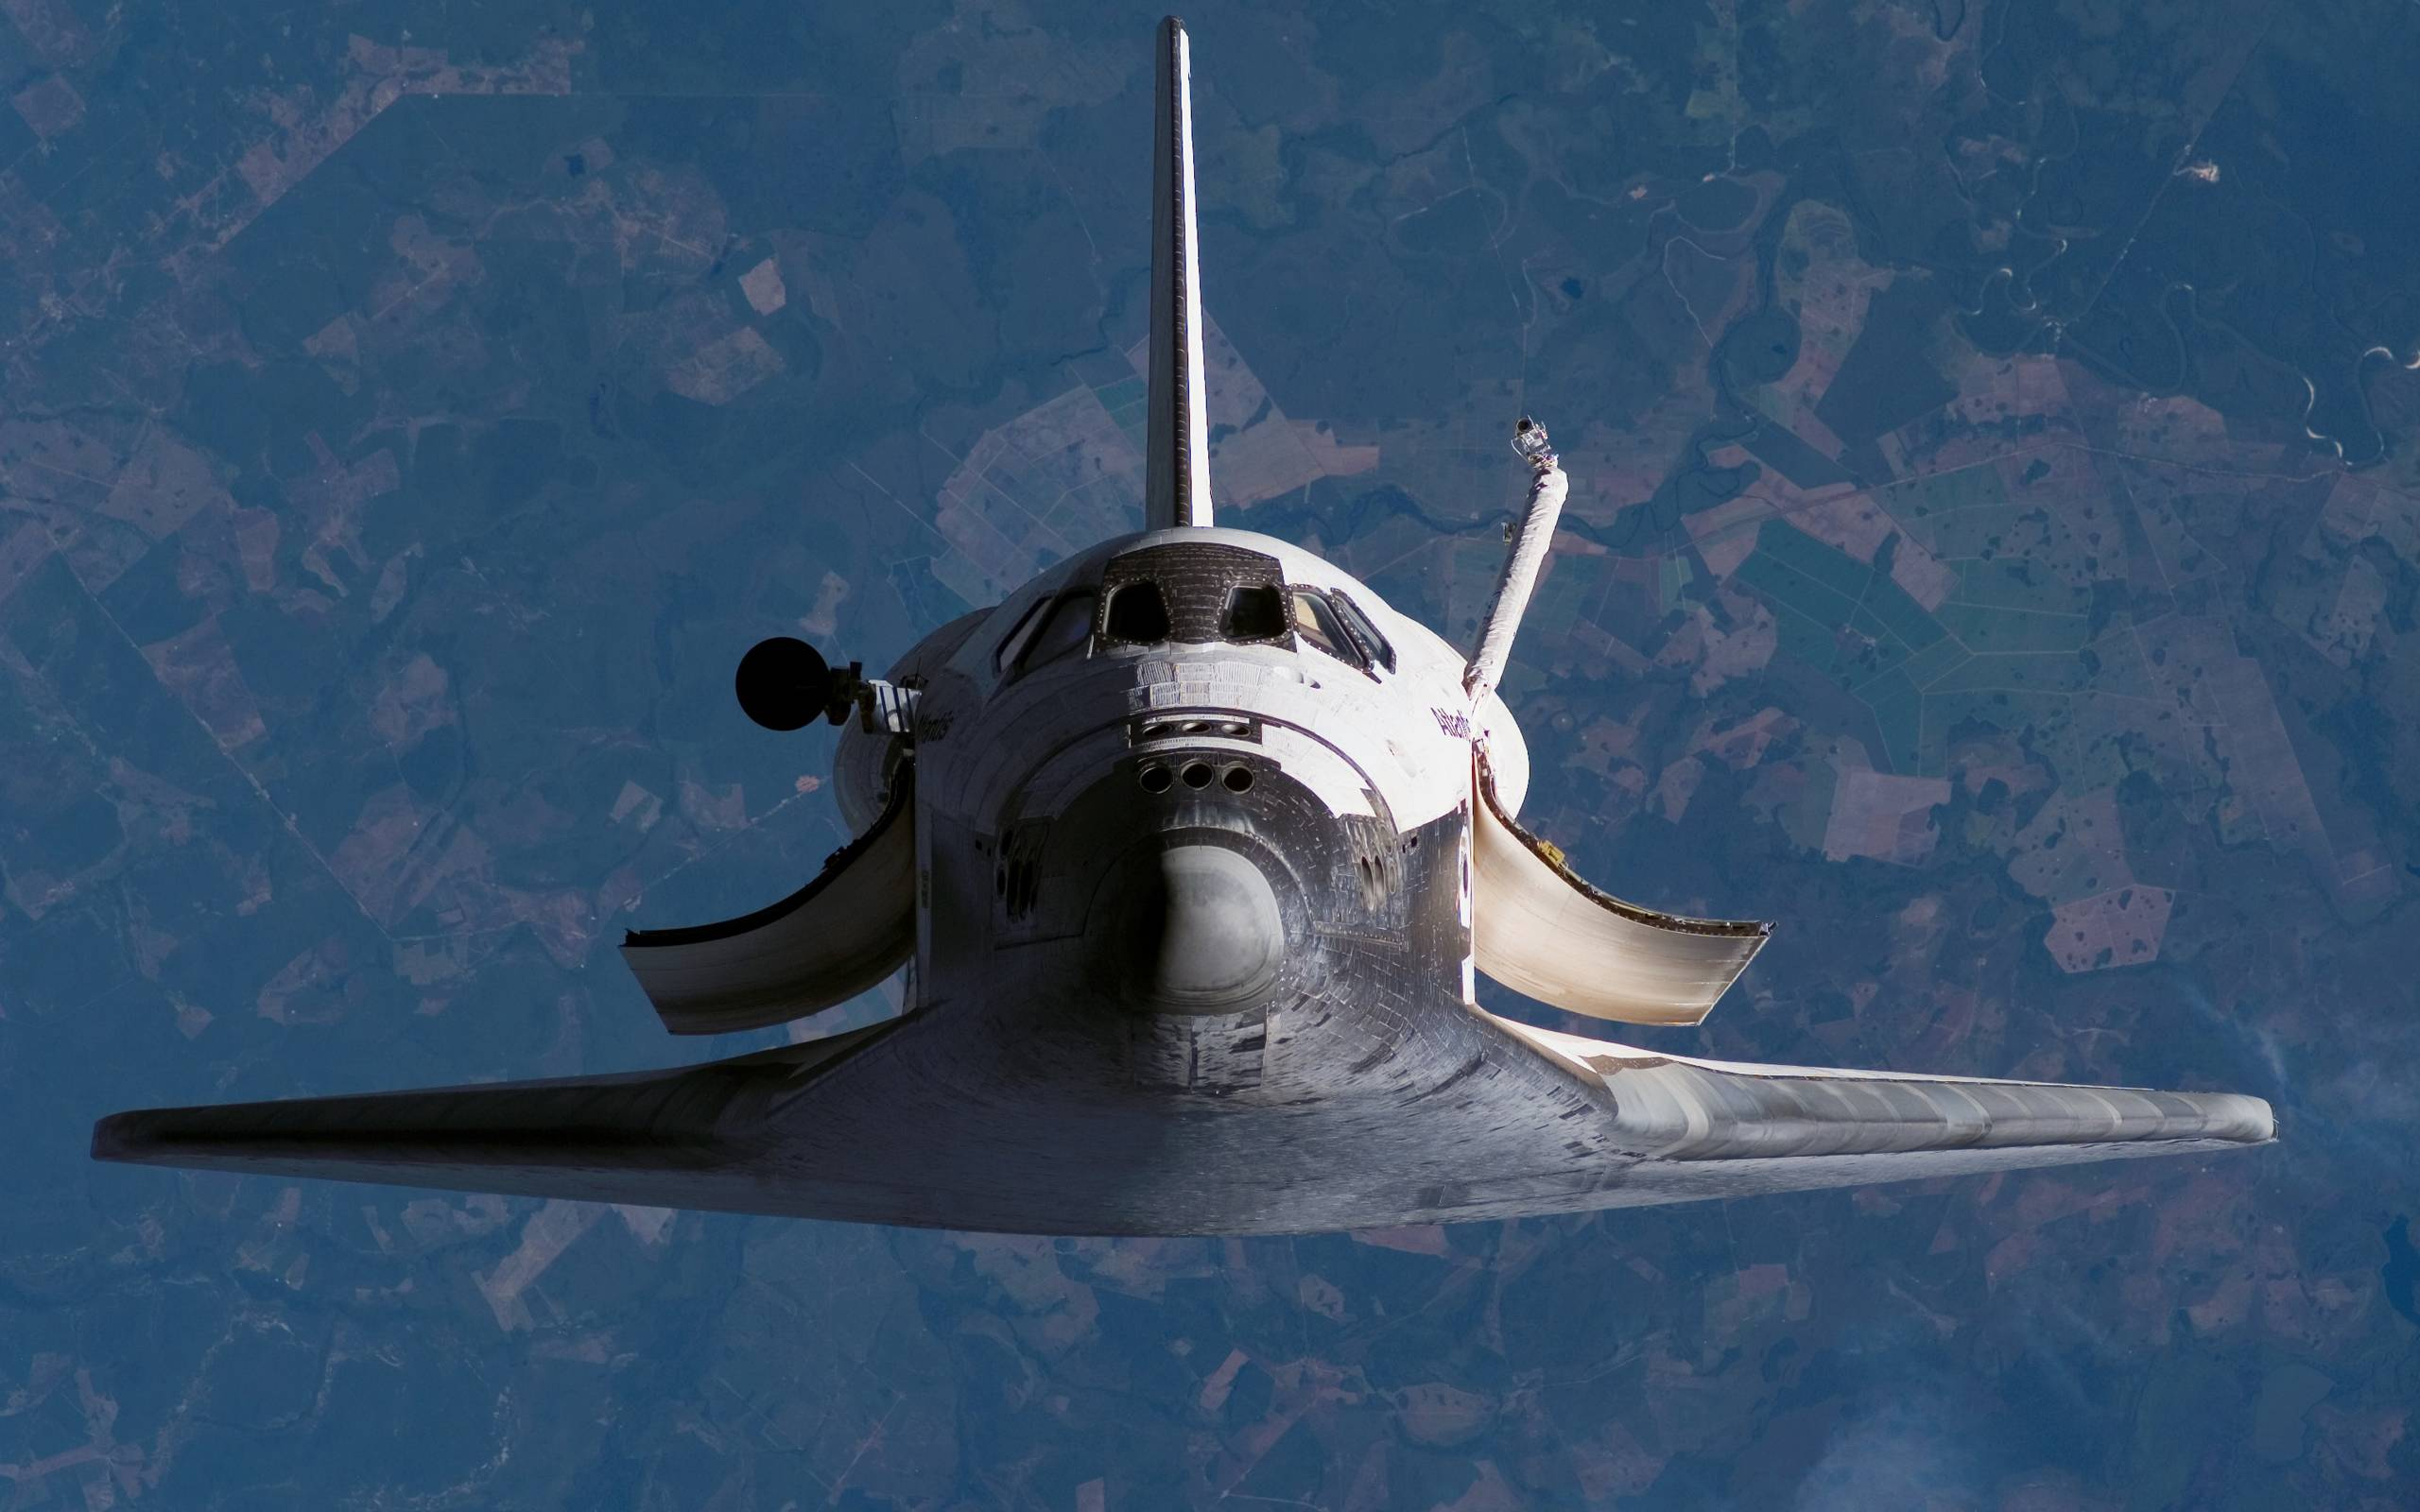 space shuttle space background - photo #14